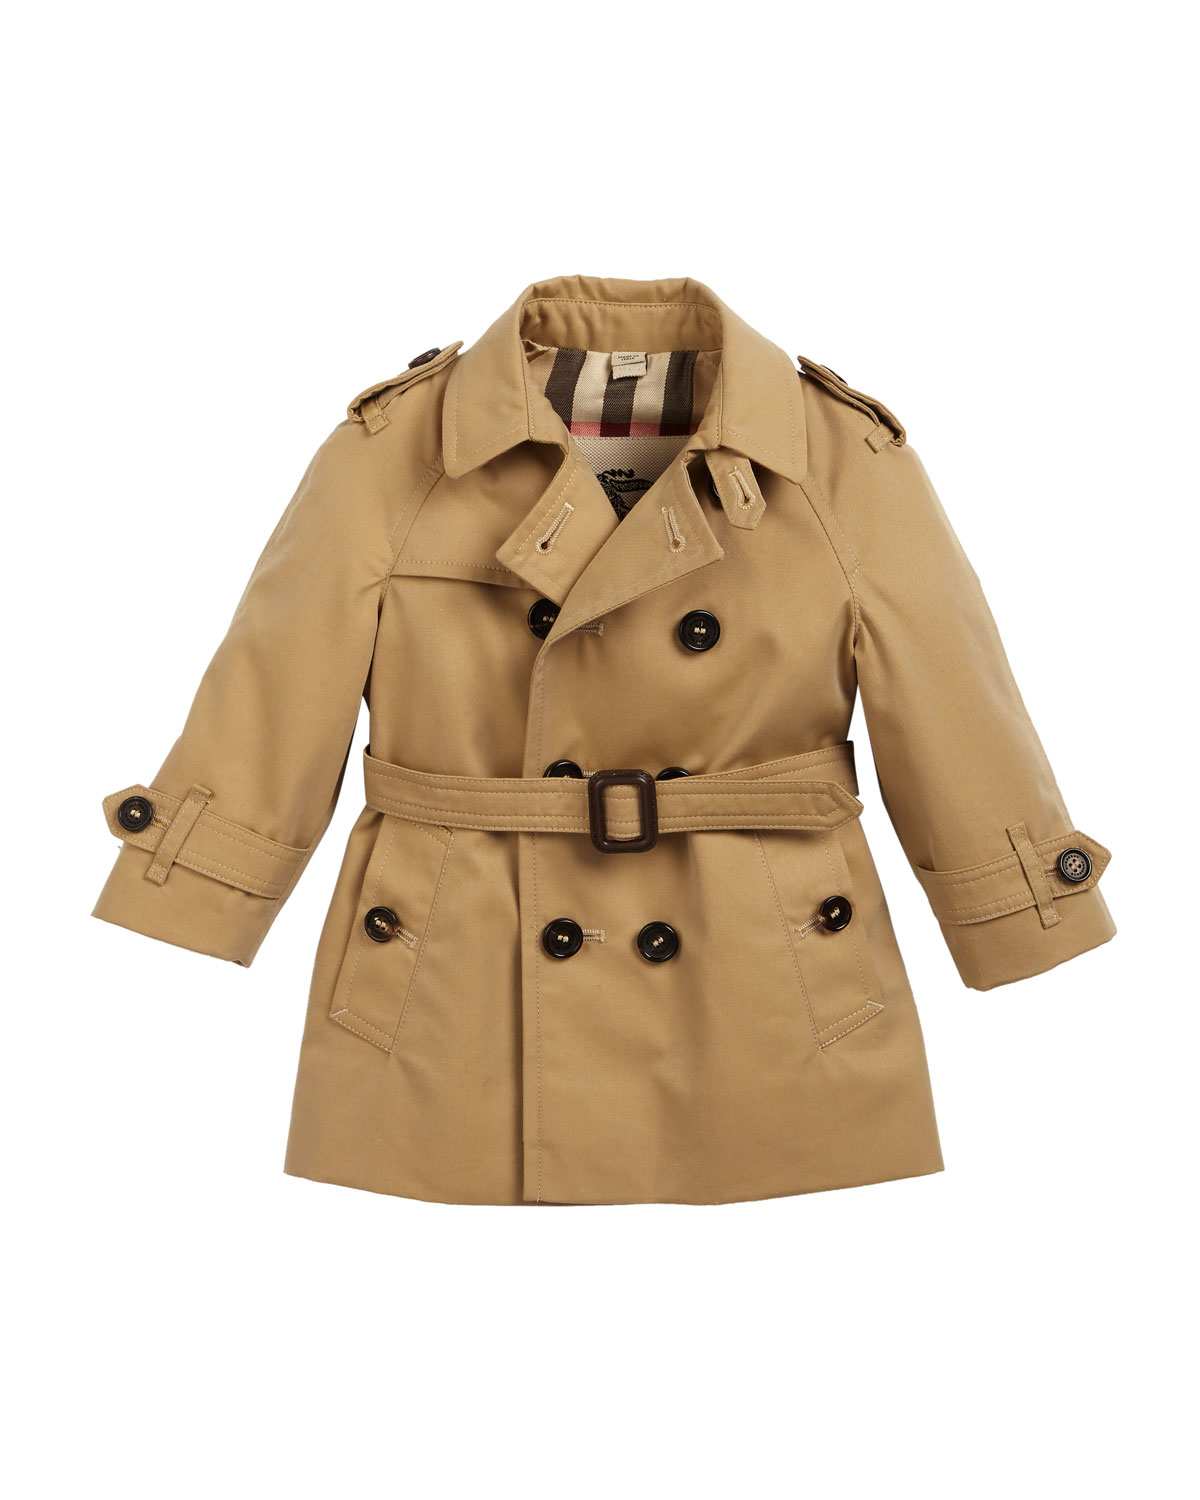 Burberry Wiltshire Trench Coat, Size 6M-3